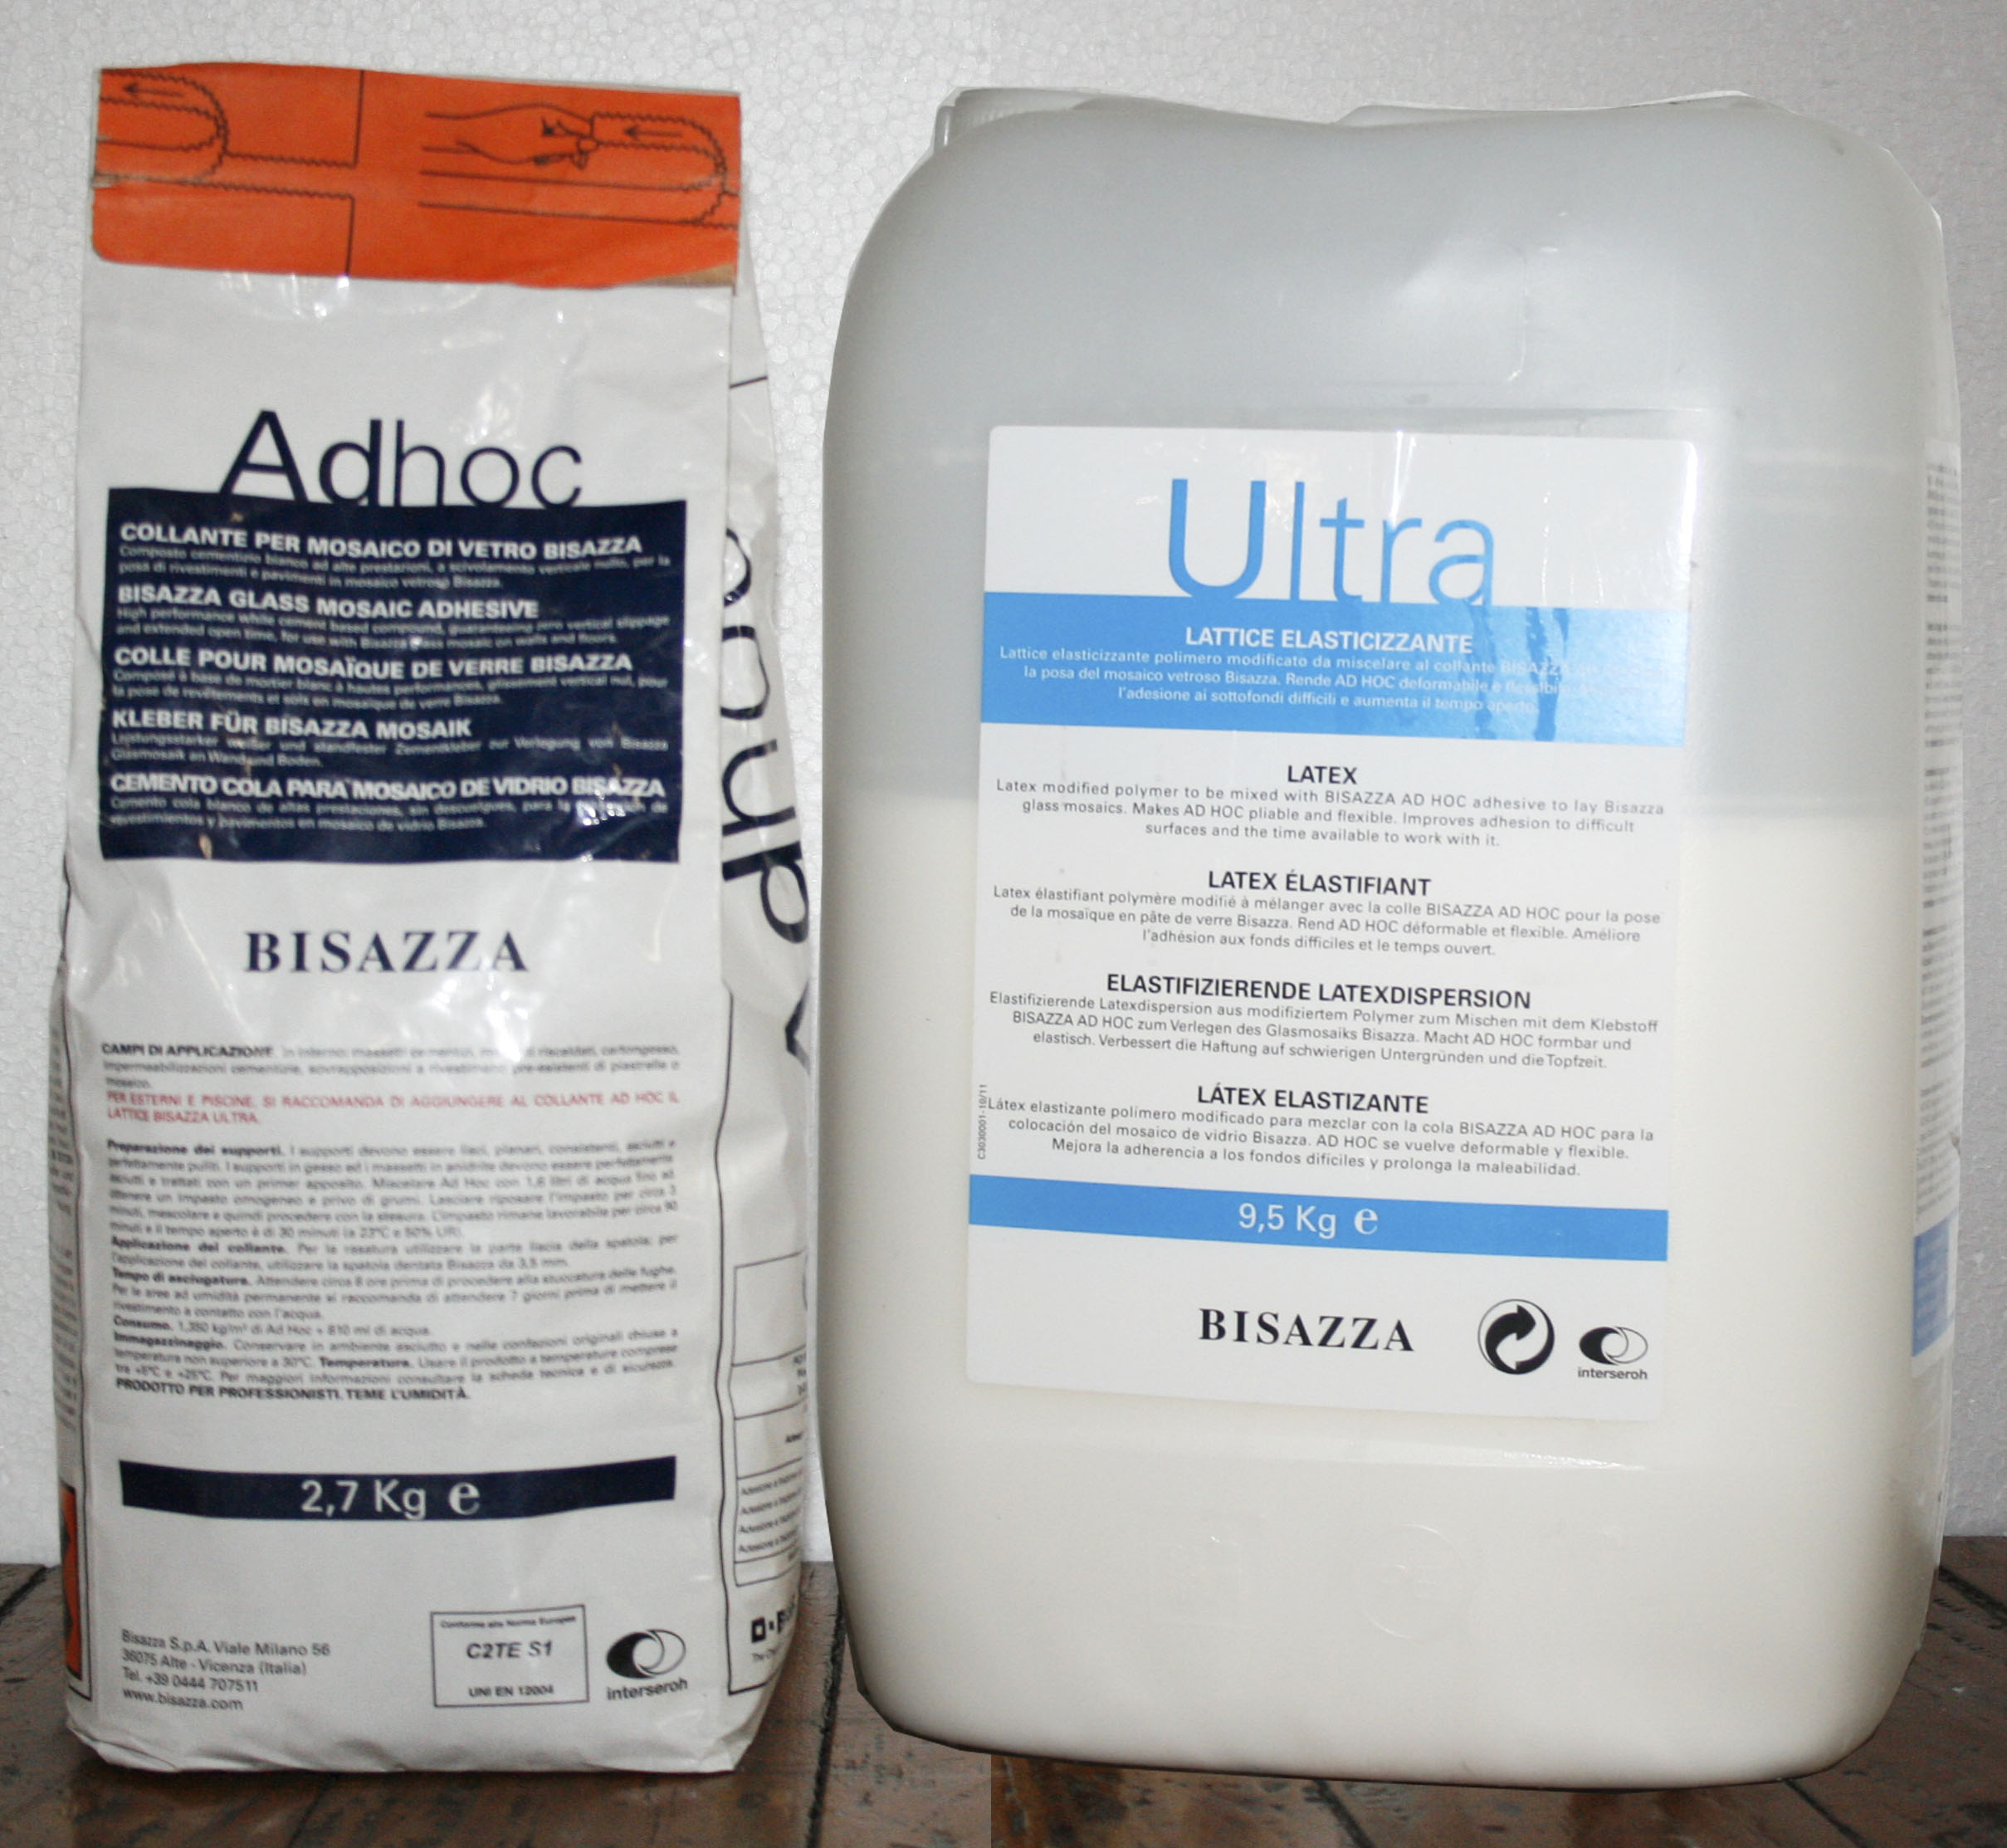 Adhesive and Grout